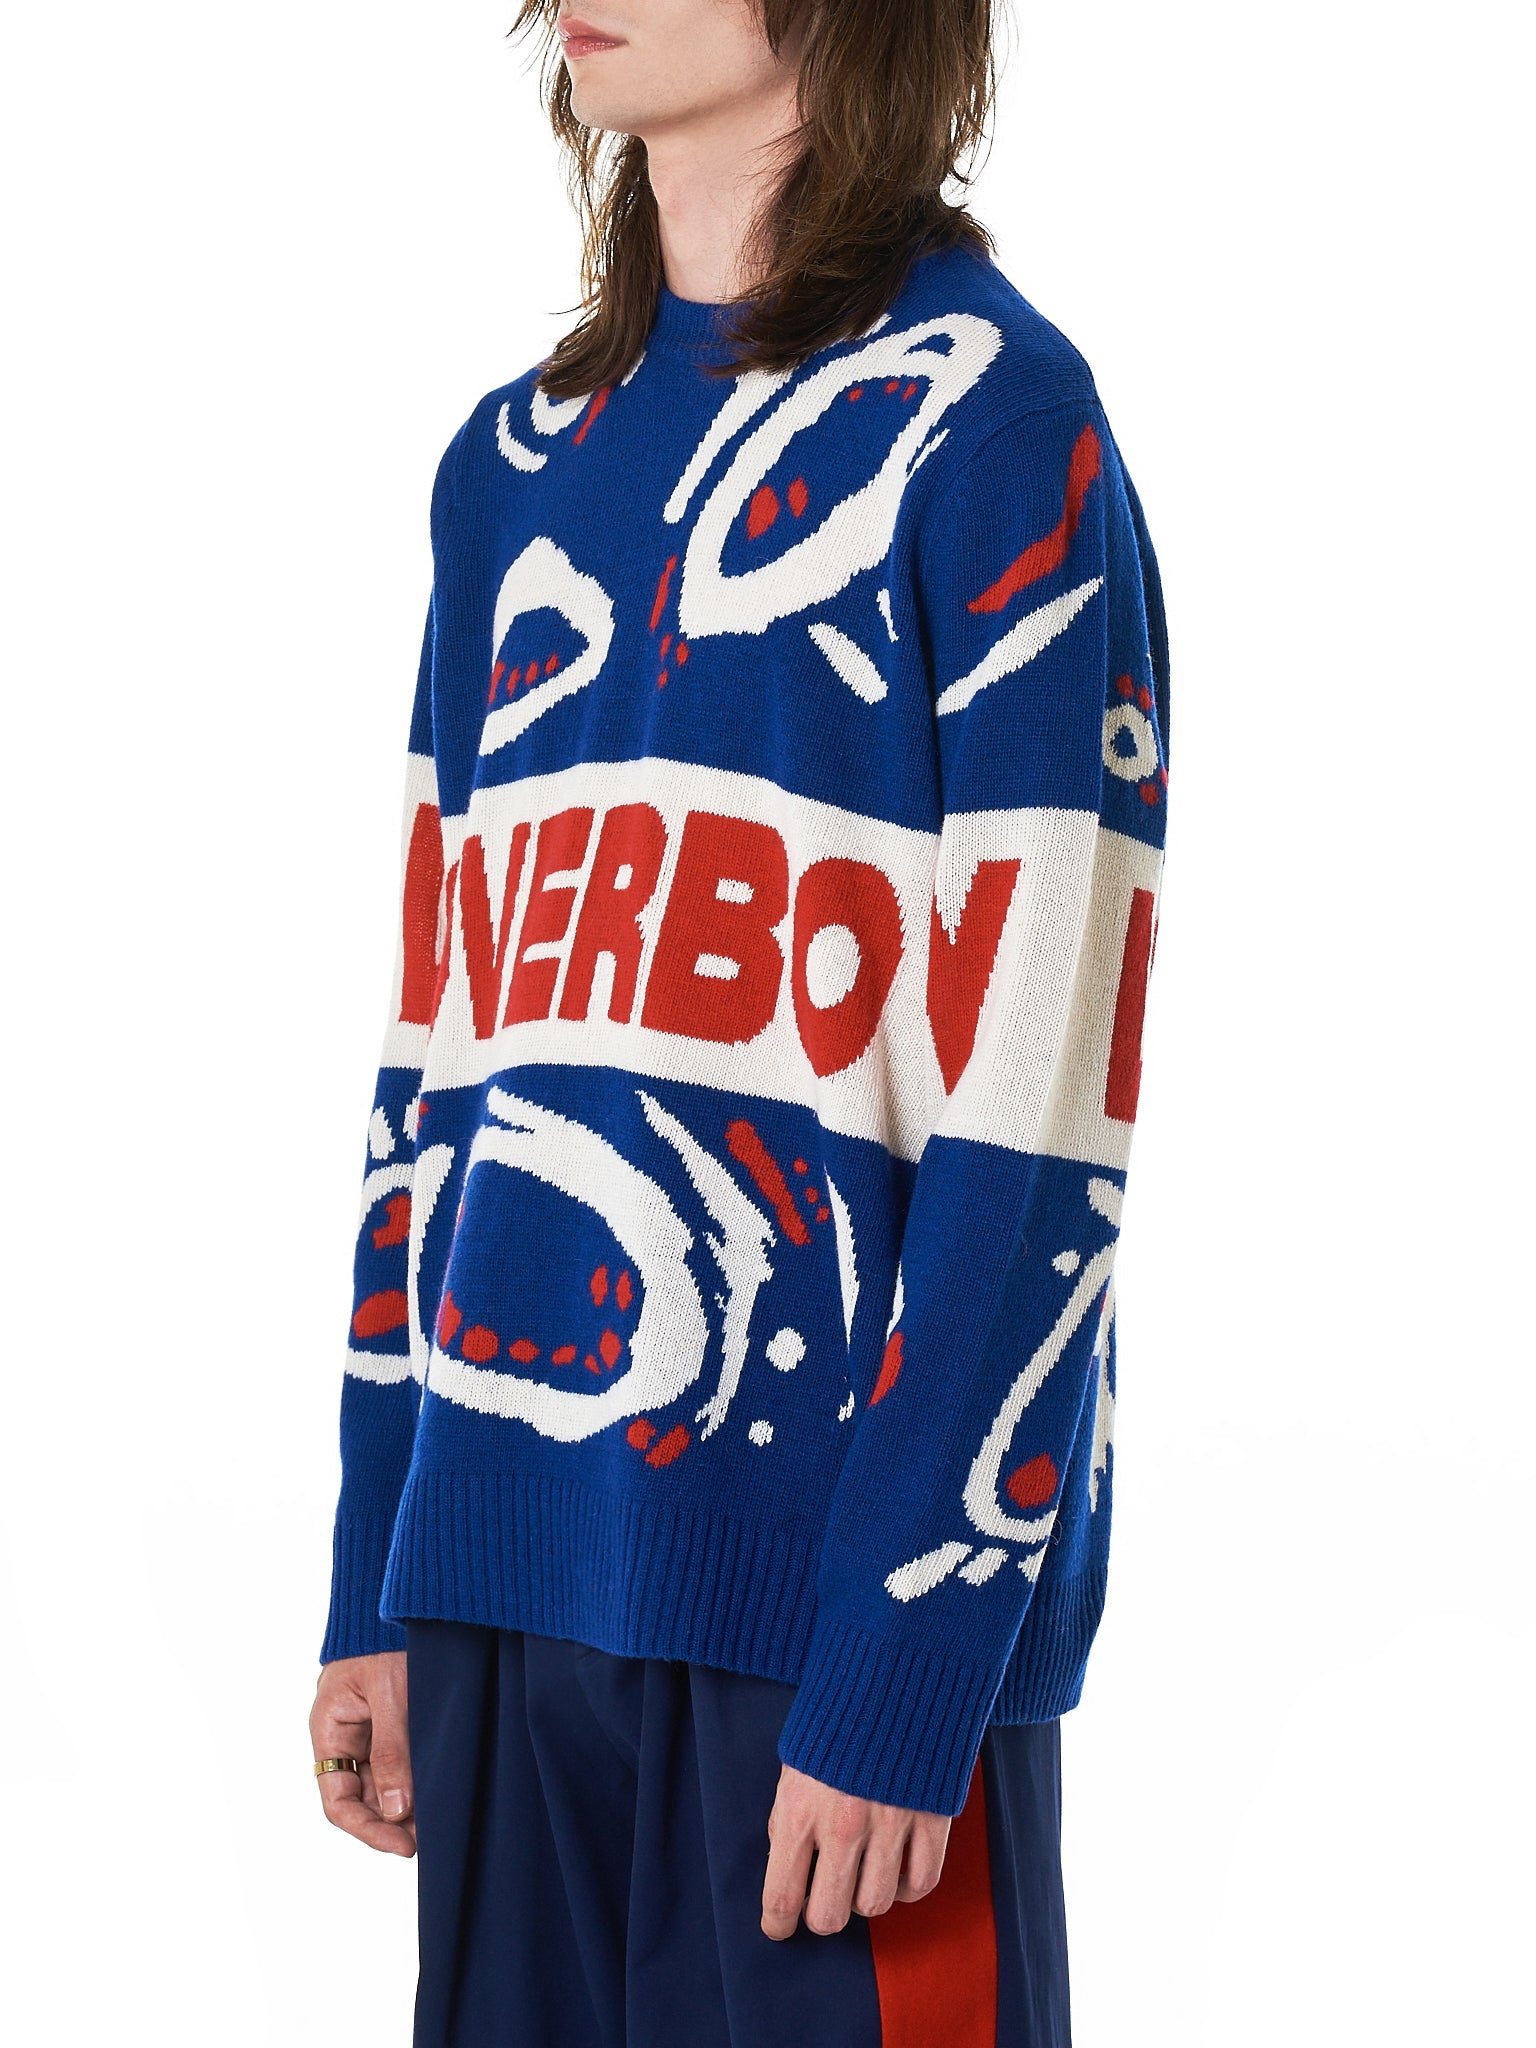 Charles Jeffrey Loverboy Sweater - Hlorenzo Side